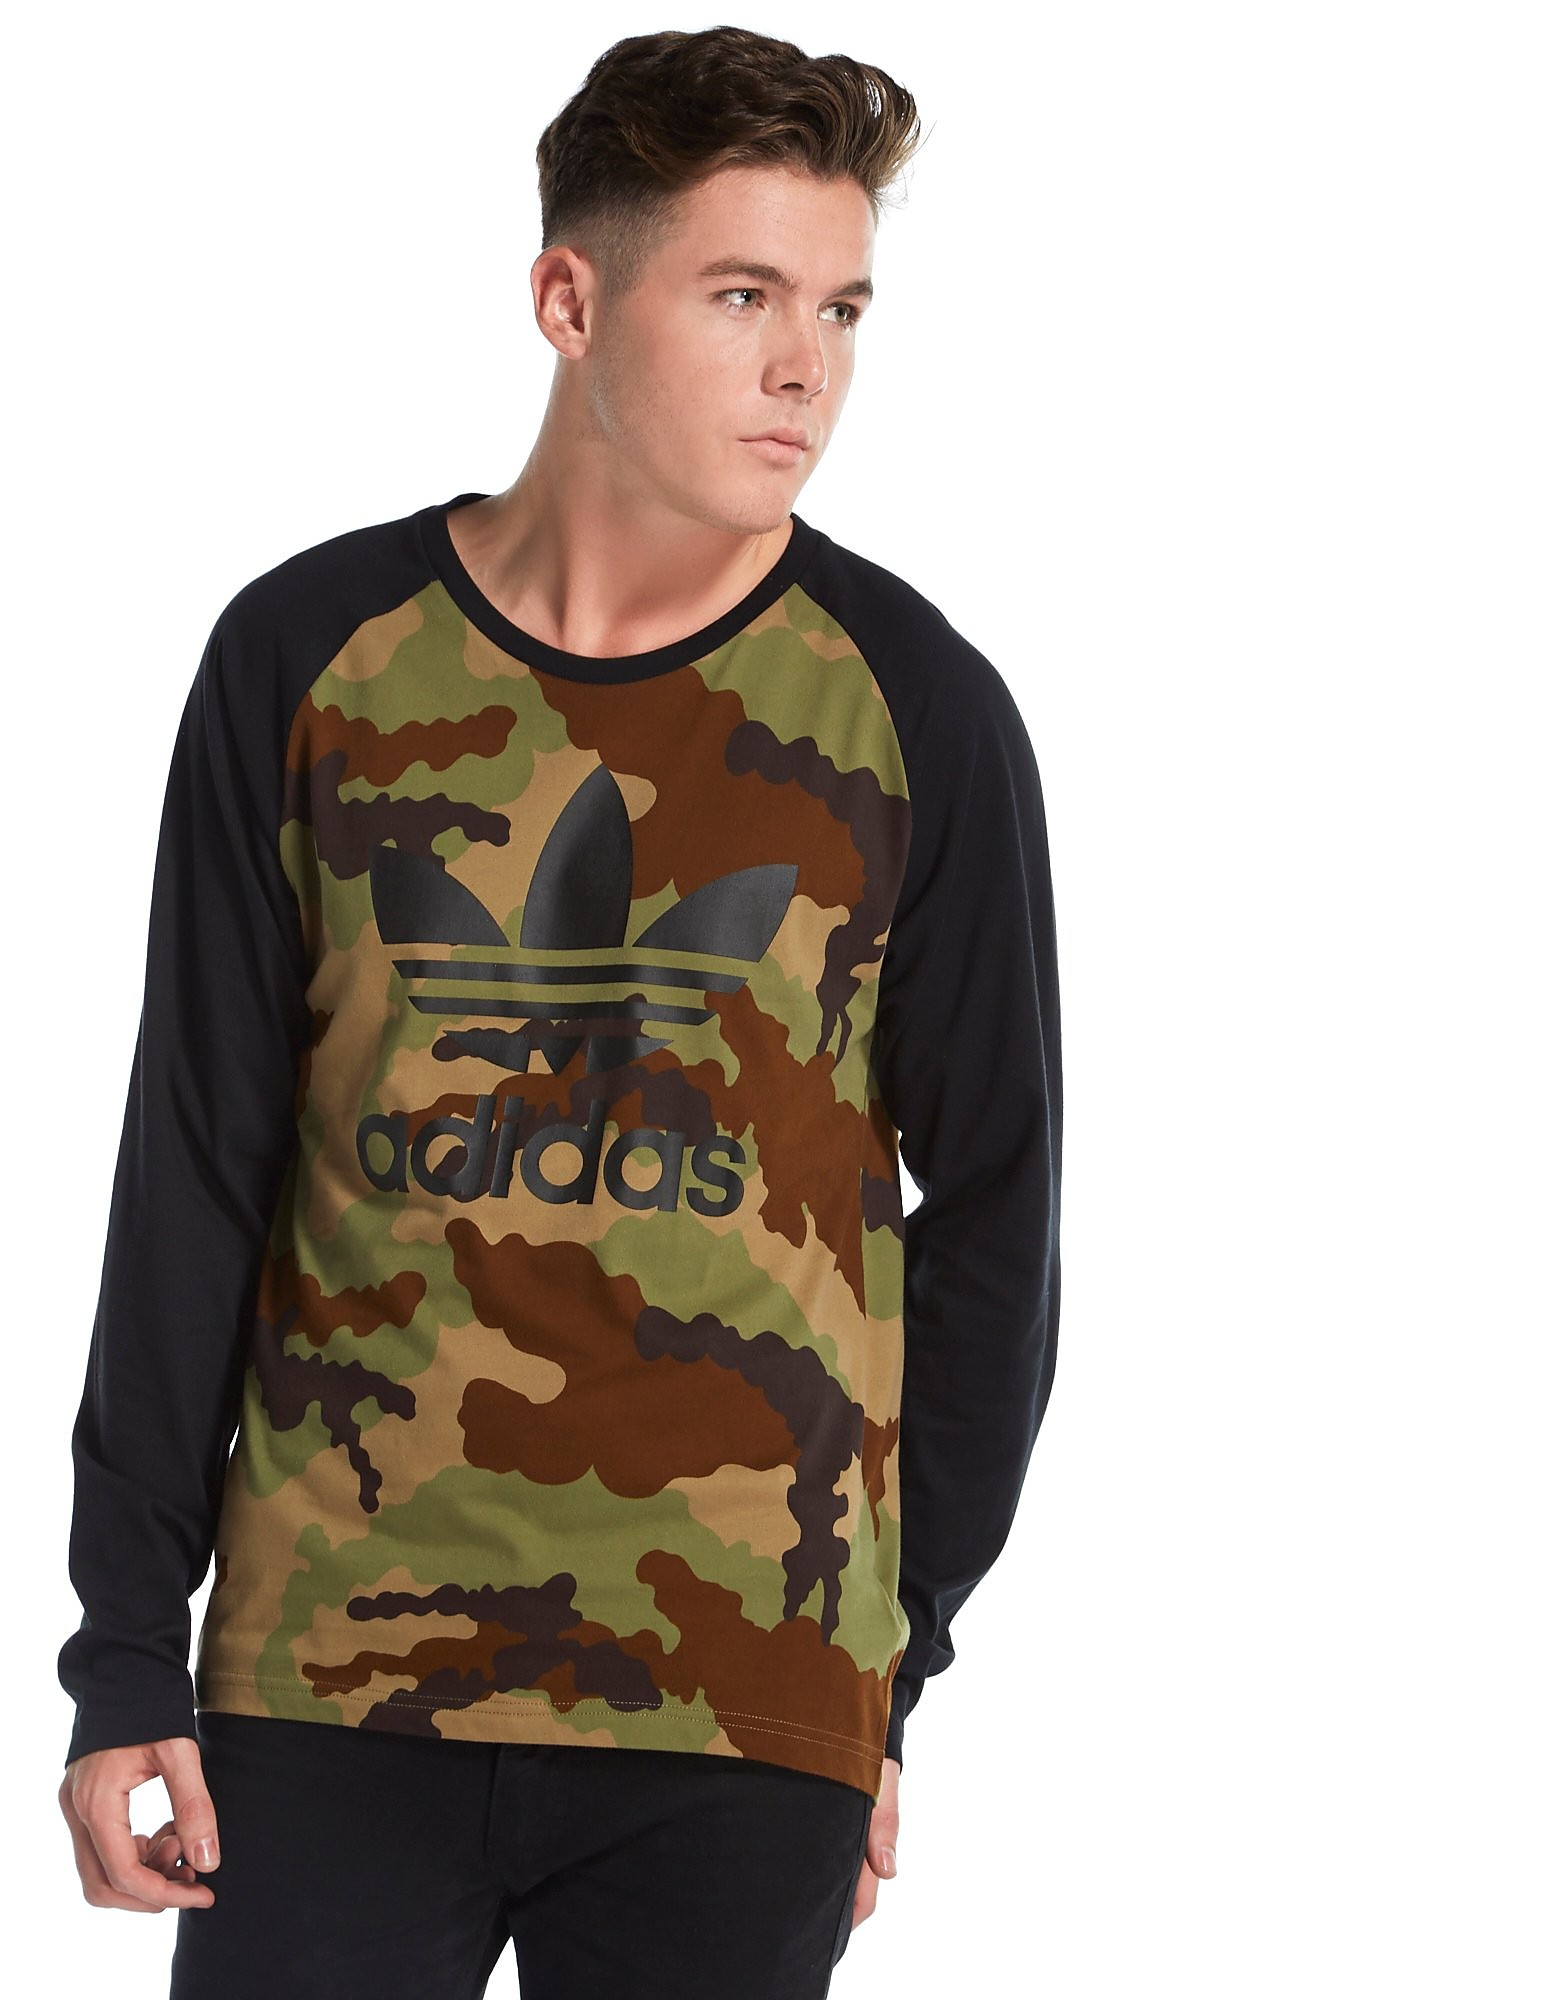 Adidas Camouflage t Shirt T-shirt Camouflage